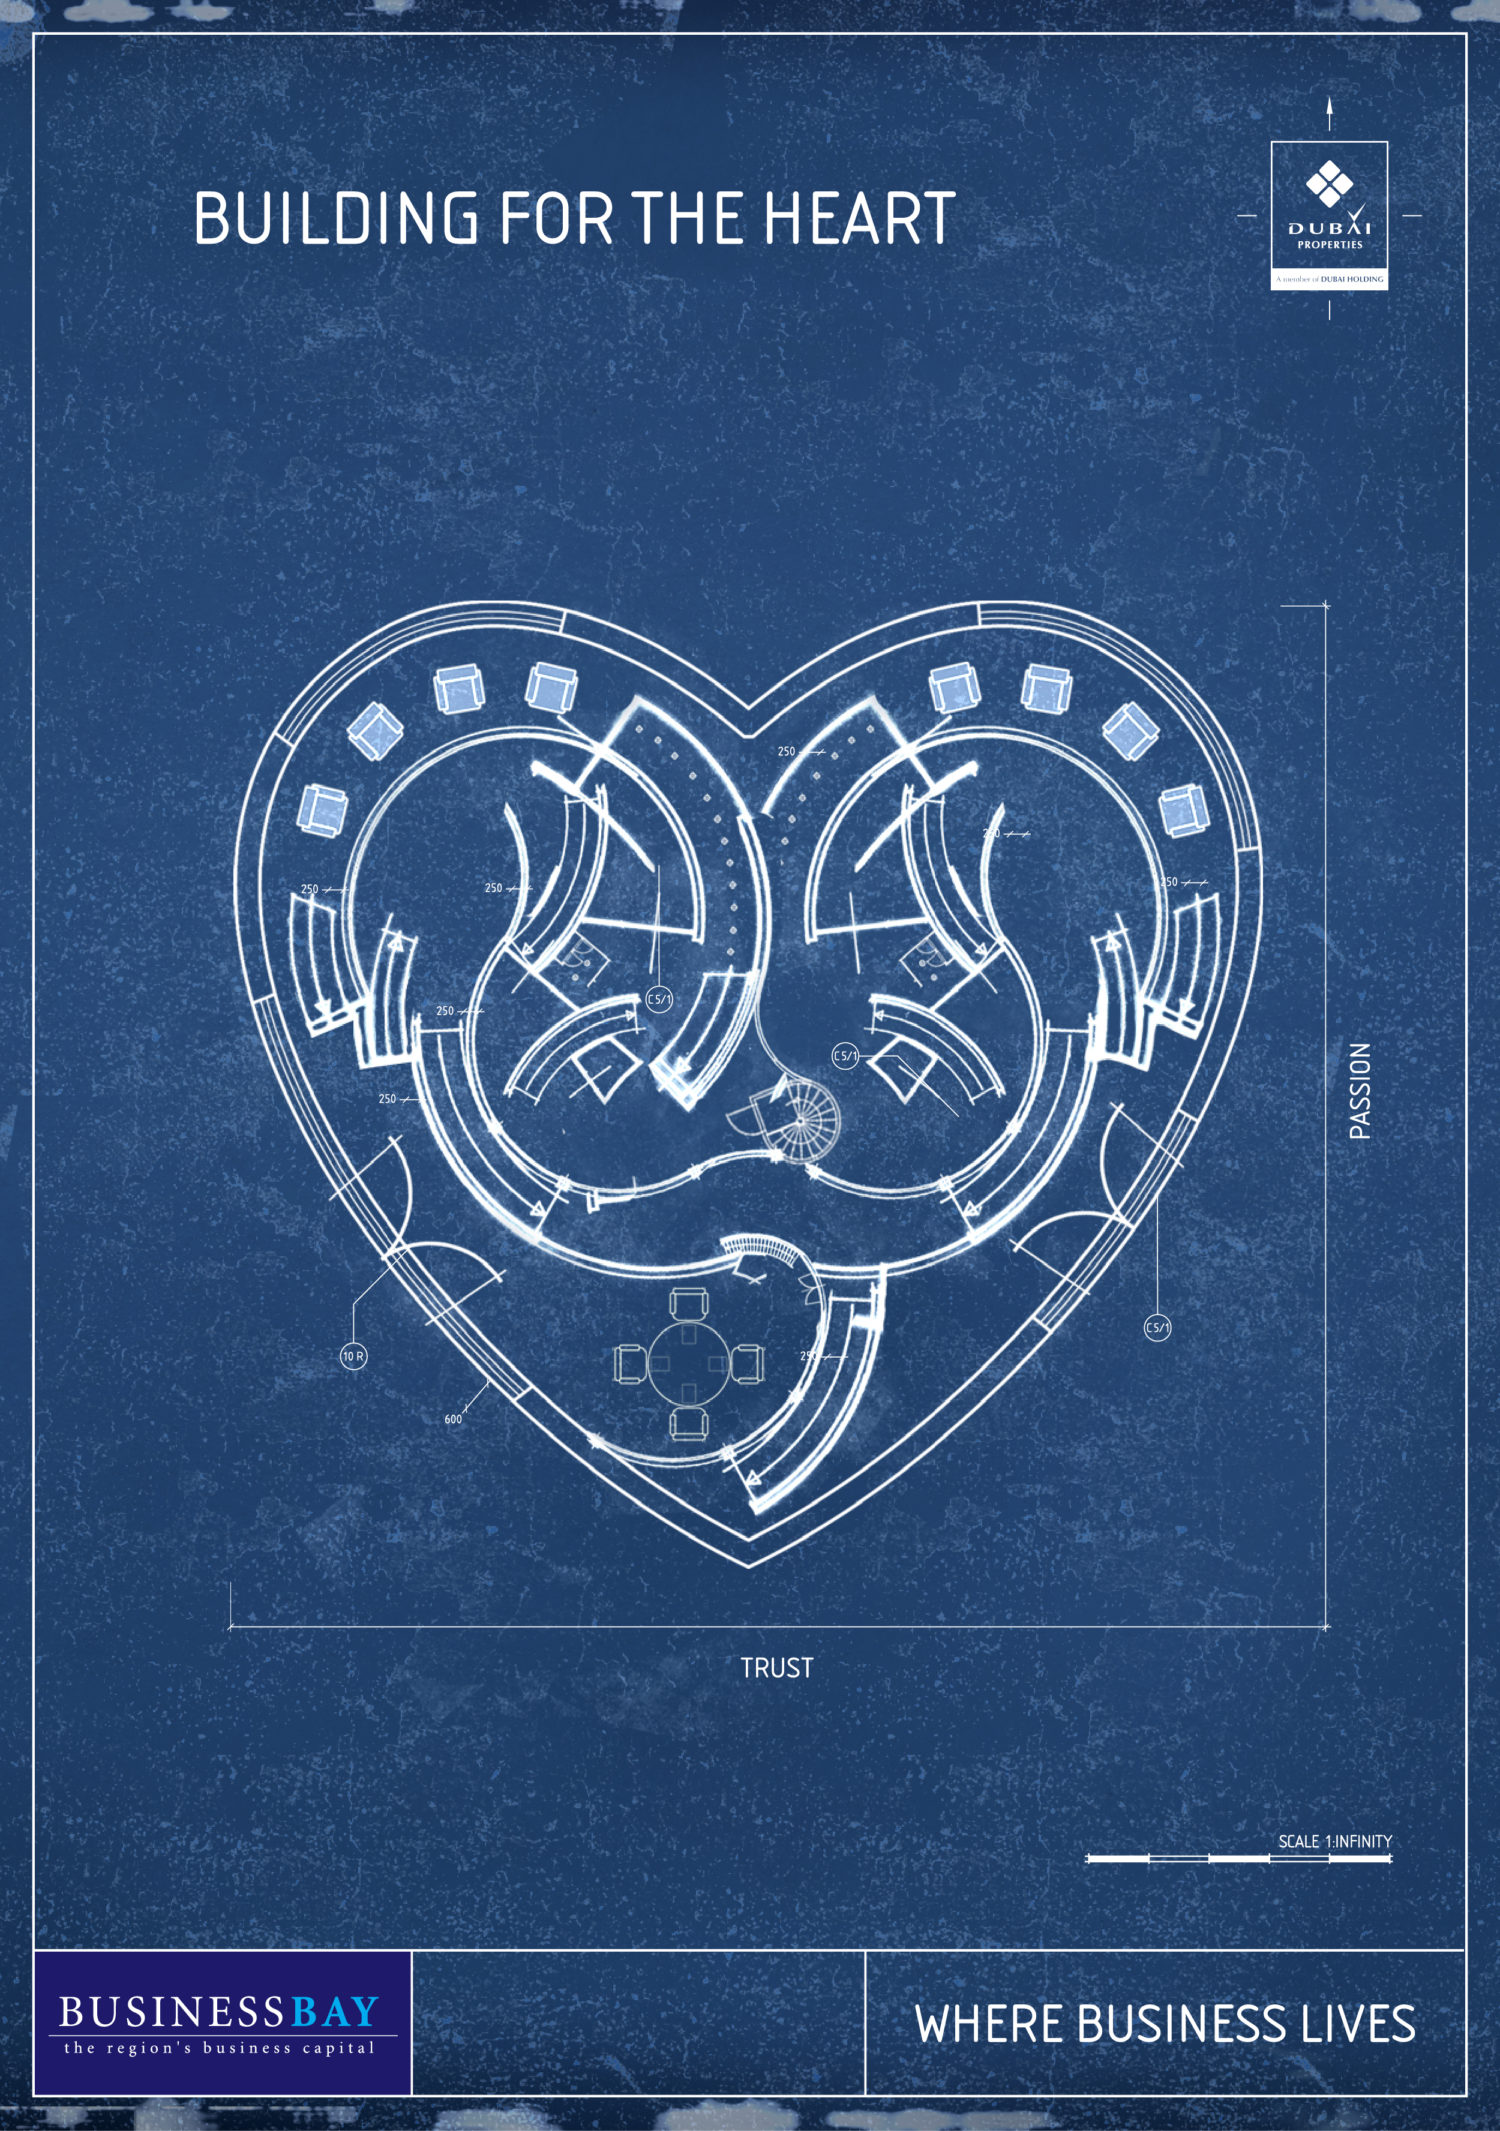 Business-Bay-Print-Campaign-Emotional-architecture-Building-for-heart